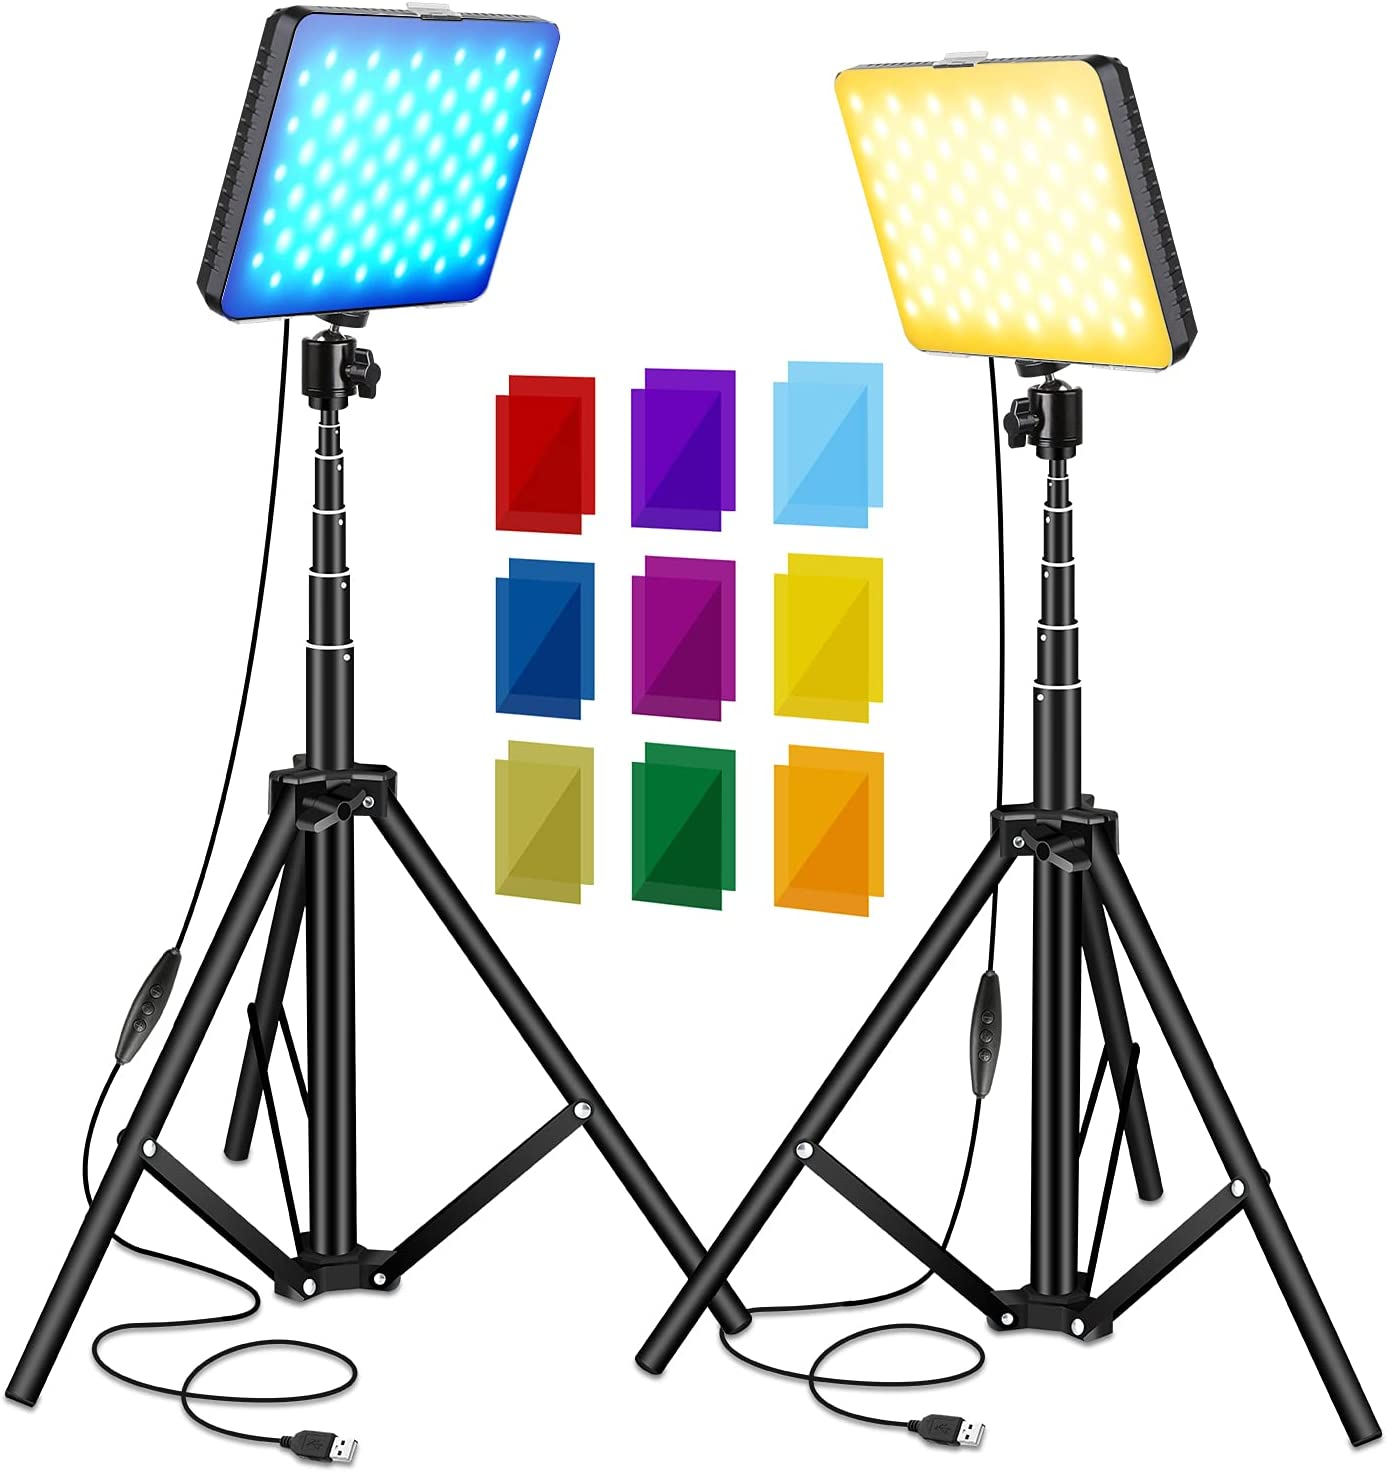 Sutefoto 2 Packs Cheap bargain USB Colorado Springs Mall 132 LED Light Continuous Tab for Kits Video